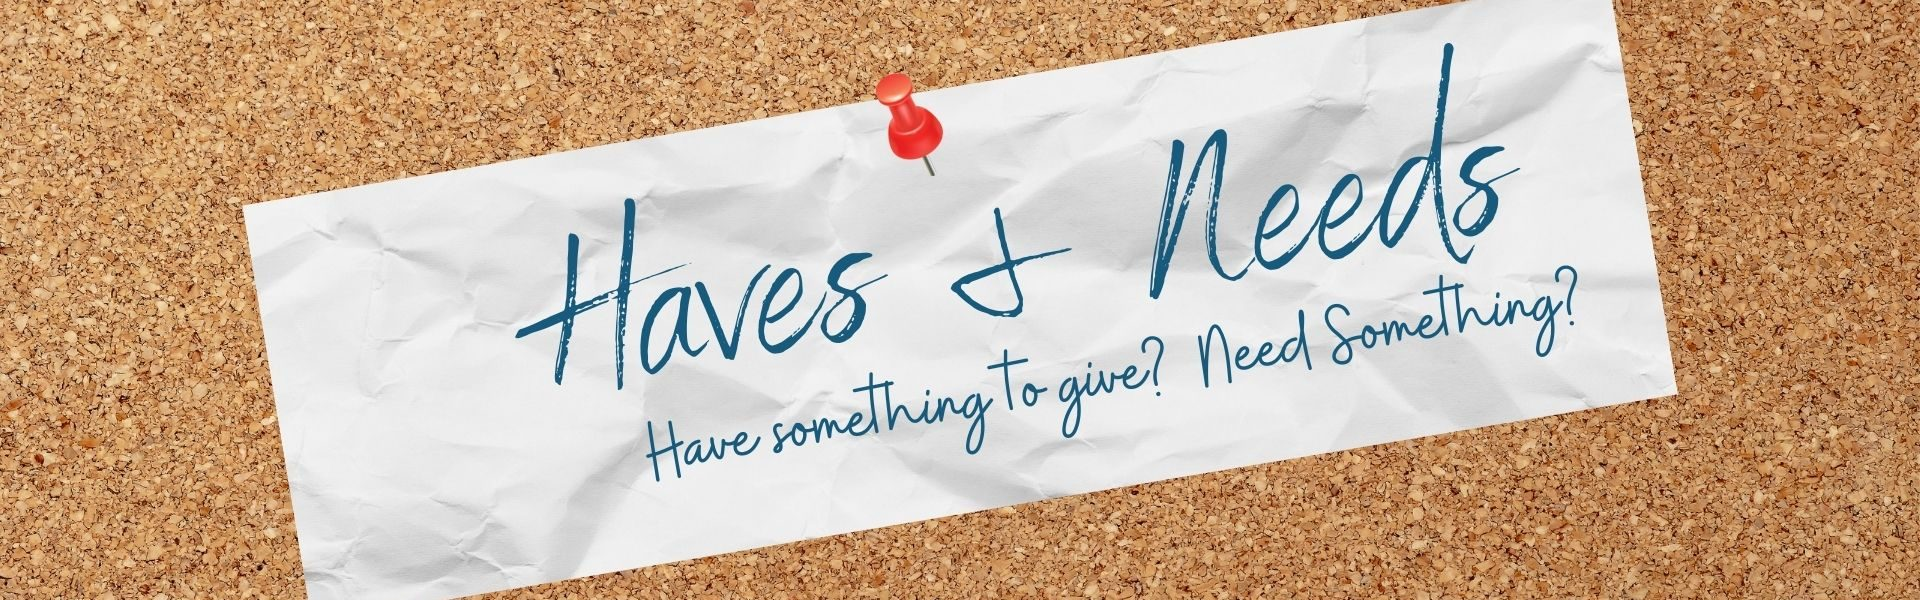 Copy of Haves & Needs newsletter3